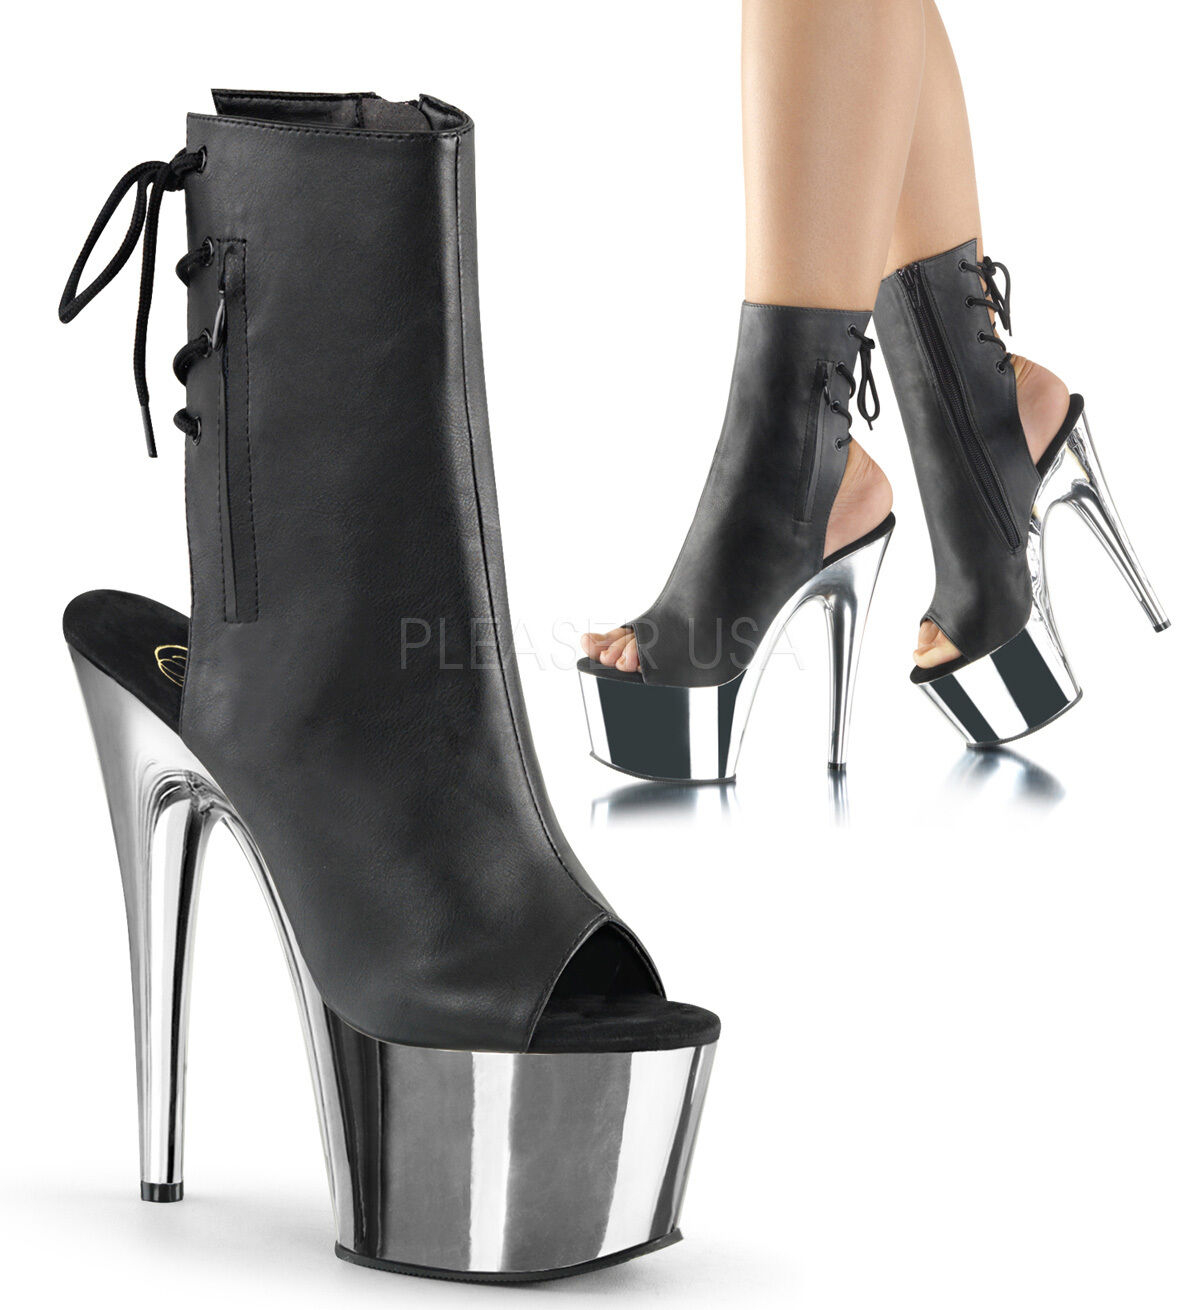 PLEASER - Adore-1018 With Peep-Toe Platform Ankle Stiefel With Adore-1018 Side Zips & Back Laces a9f013